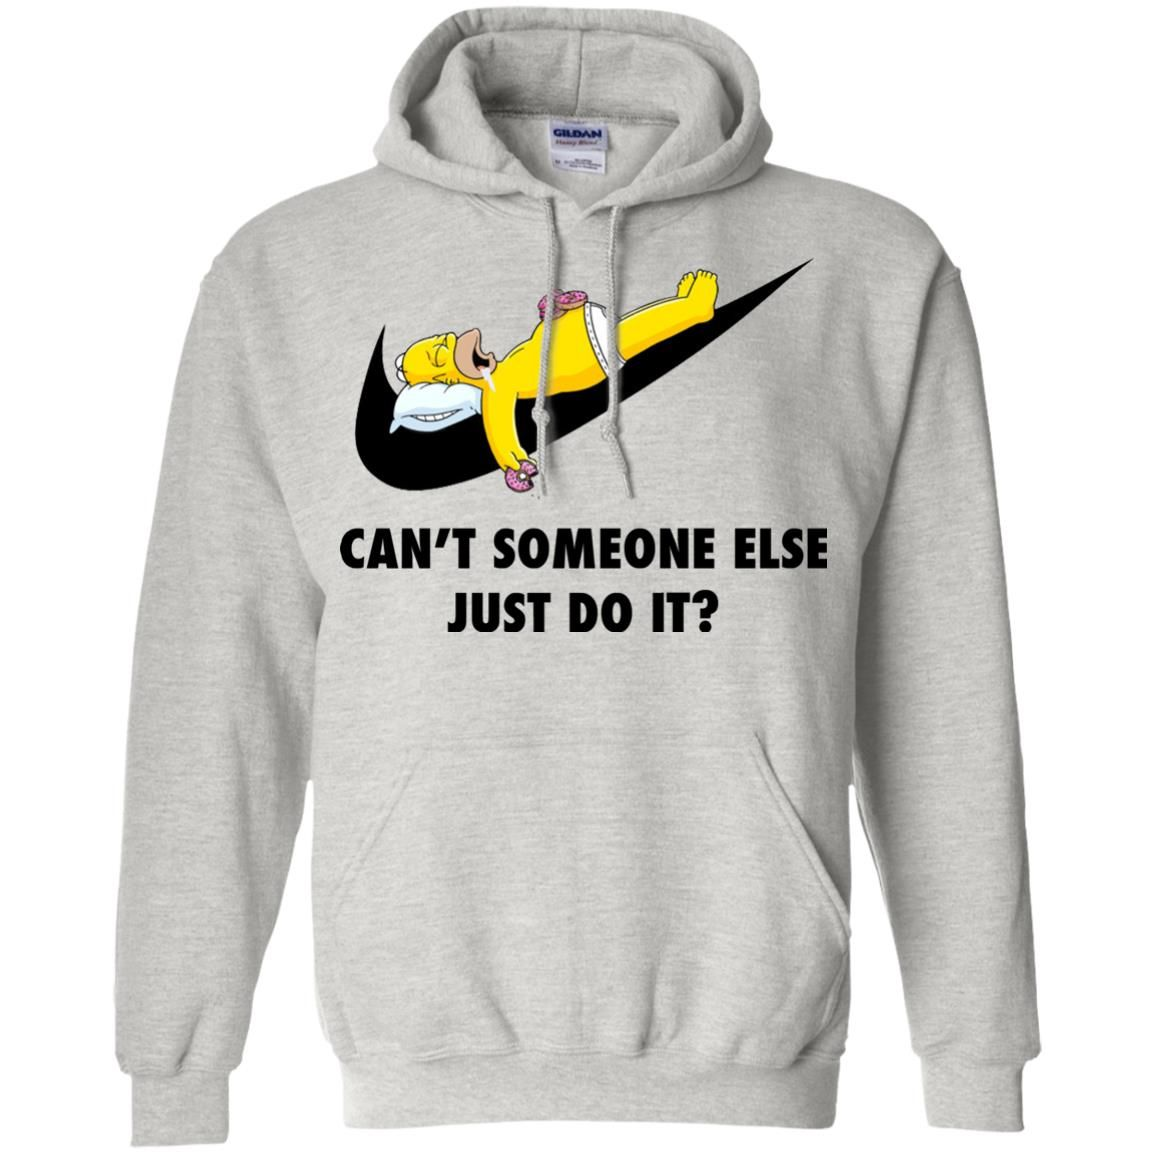 image 1406 - The Simpsons: Can't someone eles just do it shirt, tank, hoodie